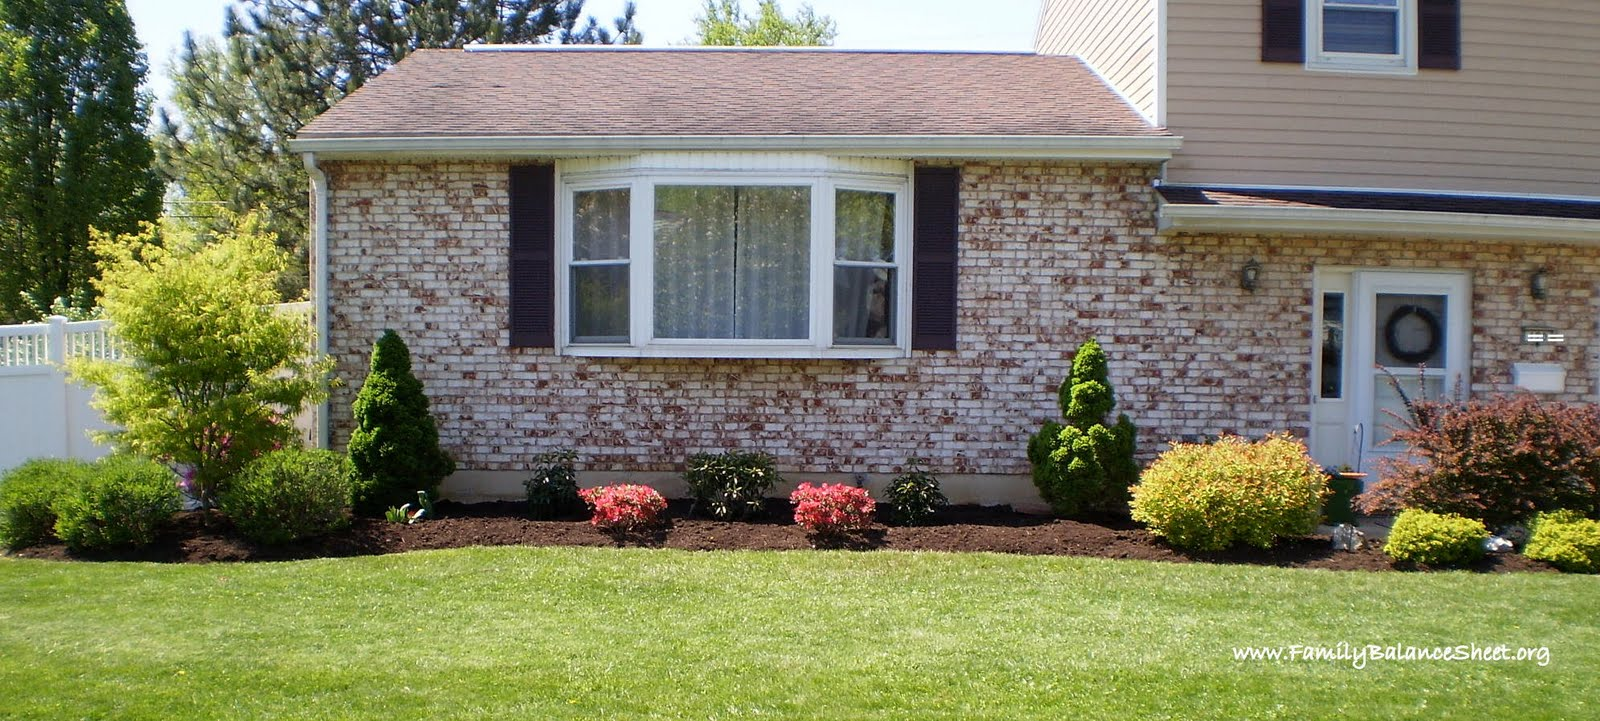 15 tips to help you design your front yard save money too for Landscaping your front yard